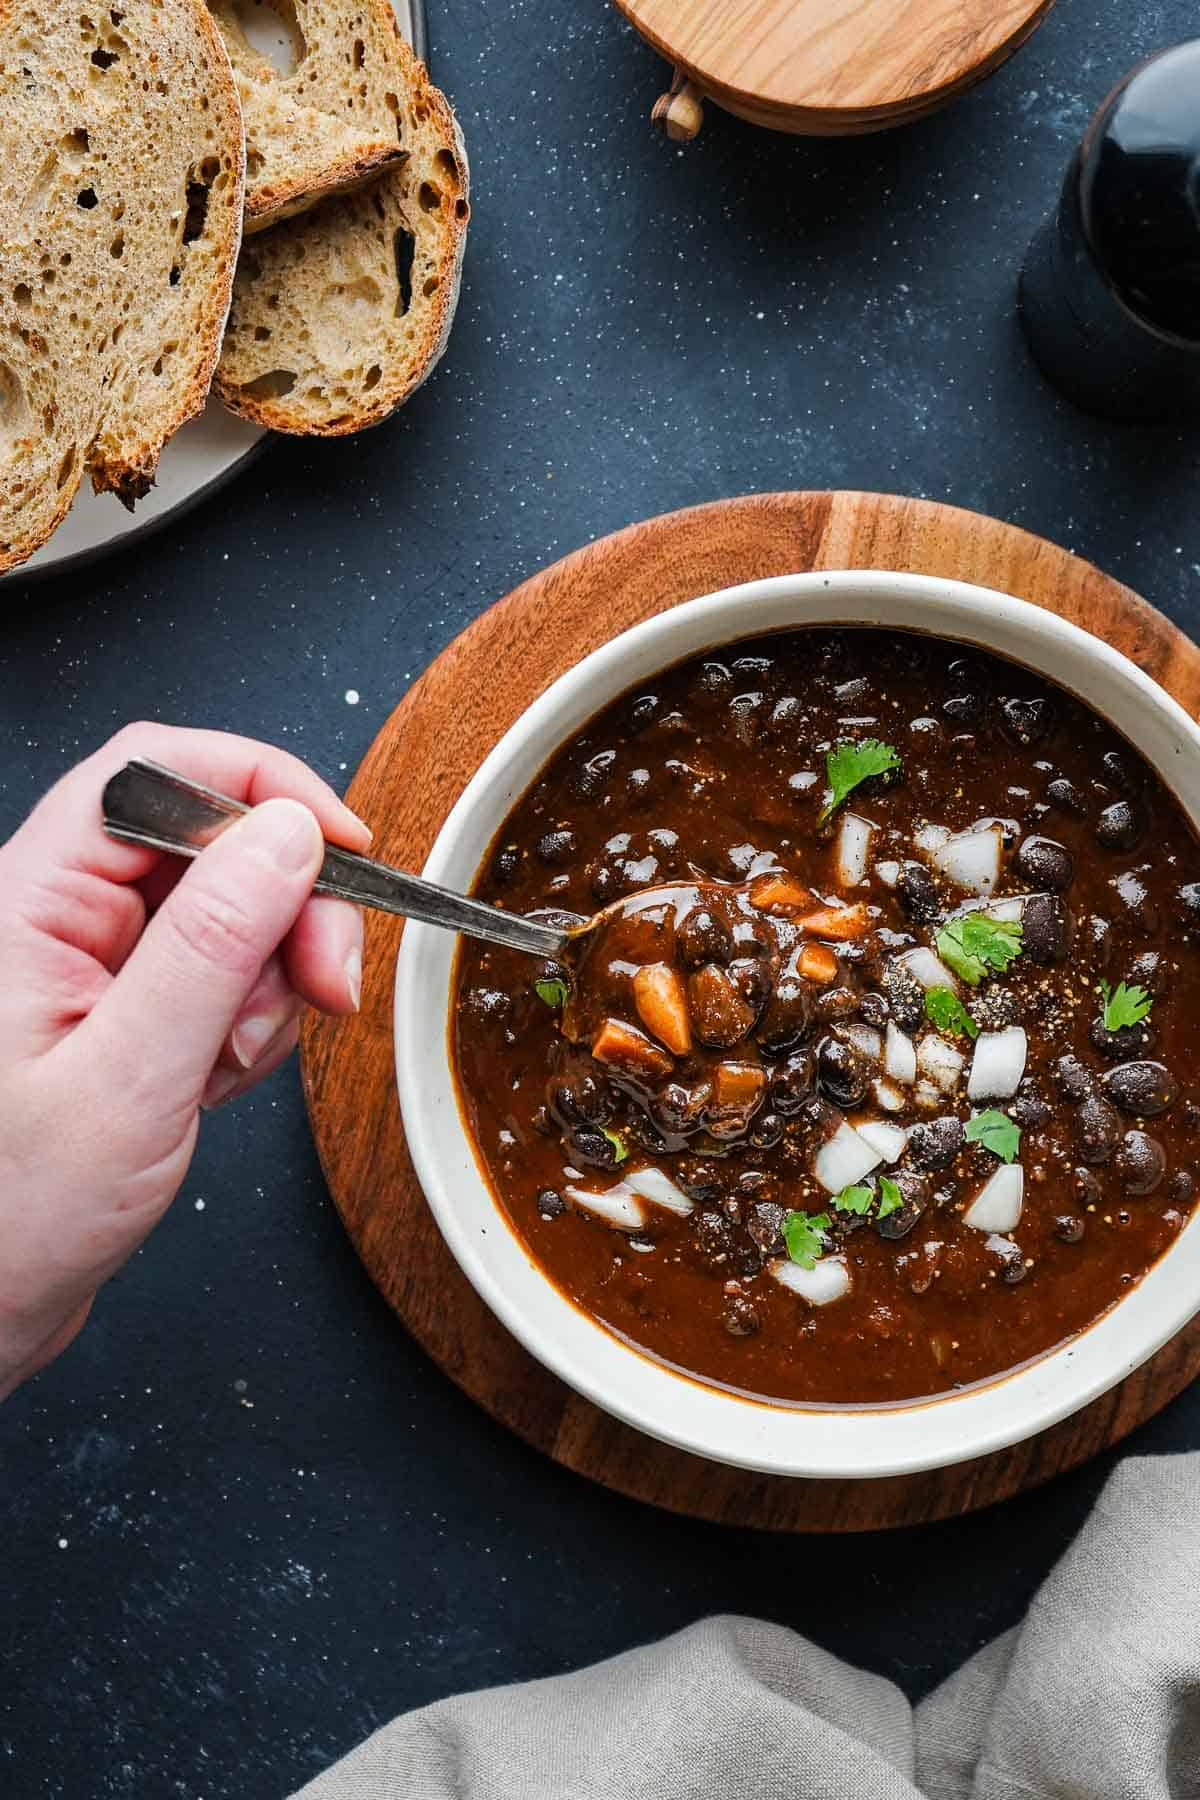 black bean soup in a bowl with a hand dipping a spoon inside with bread on the side